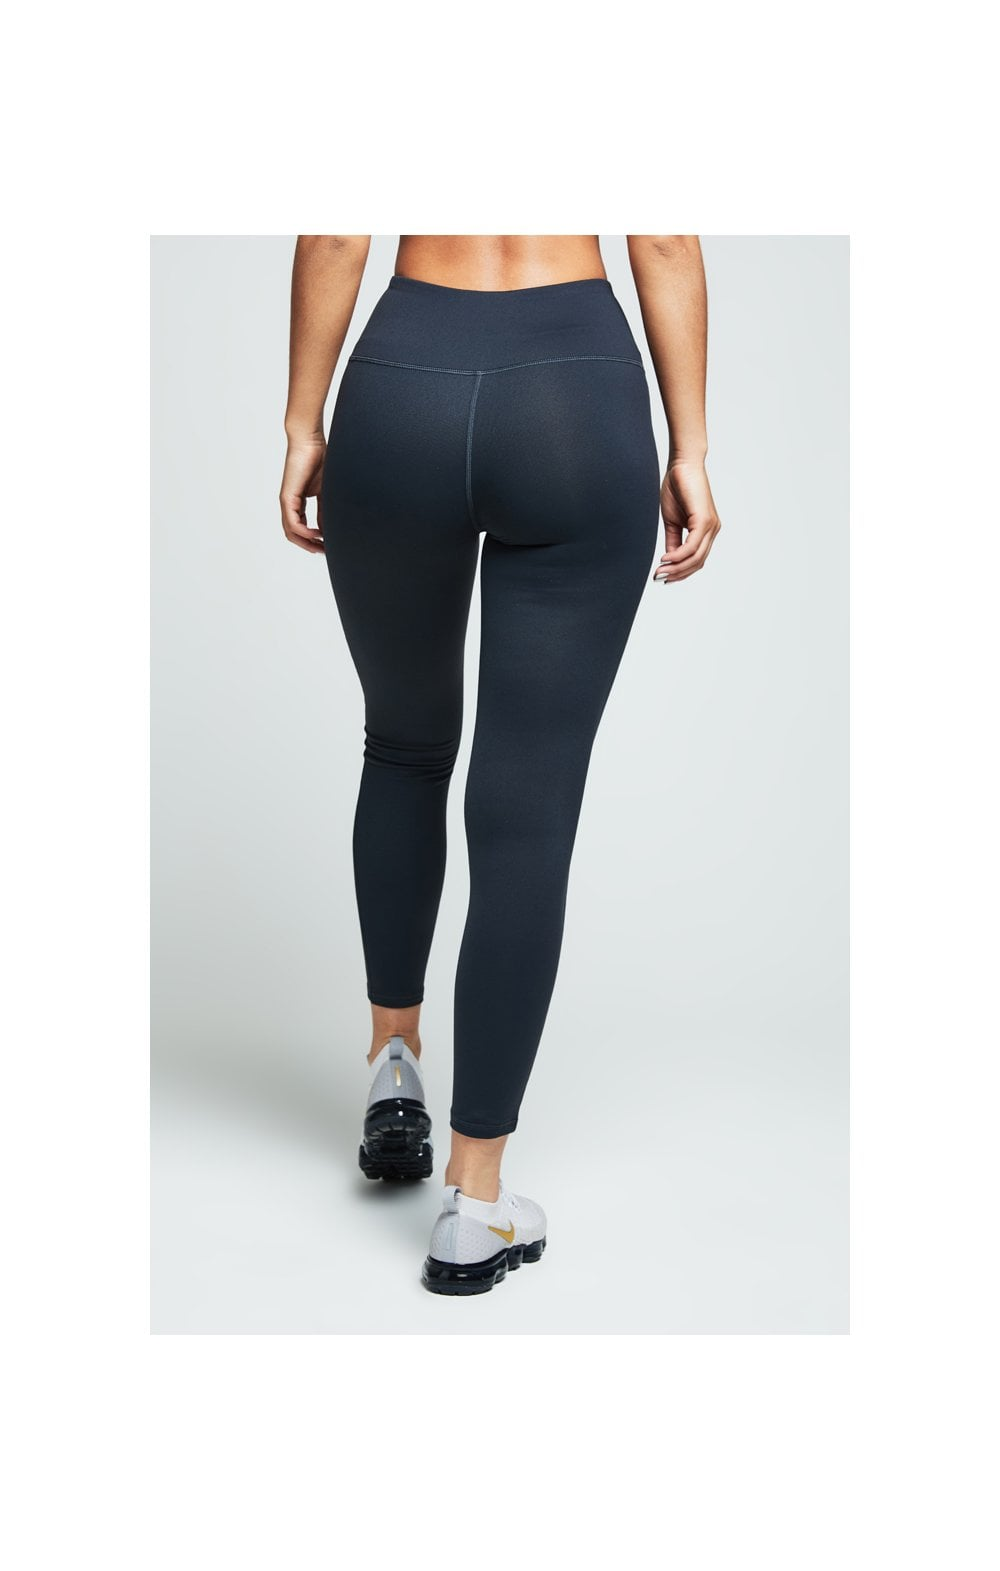 SikSilk Gym Leggings – Charcoal (5)